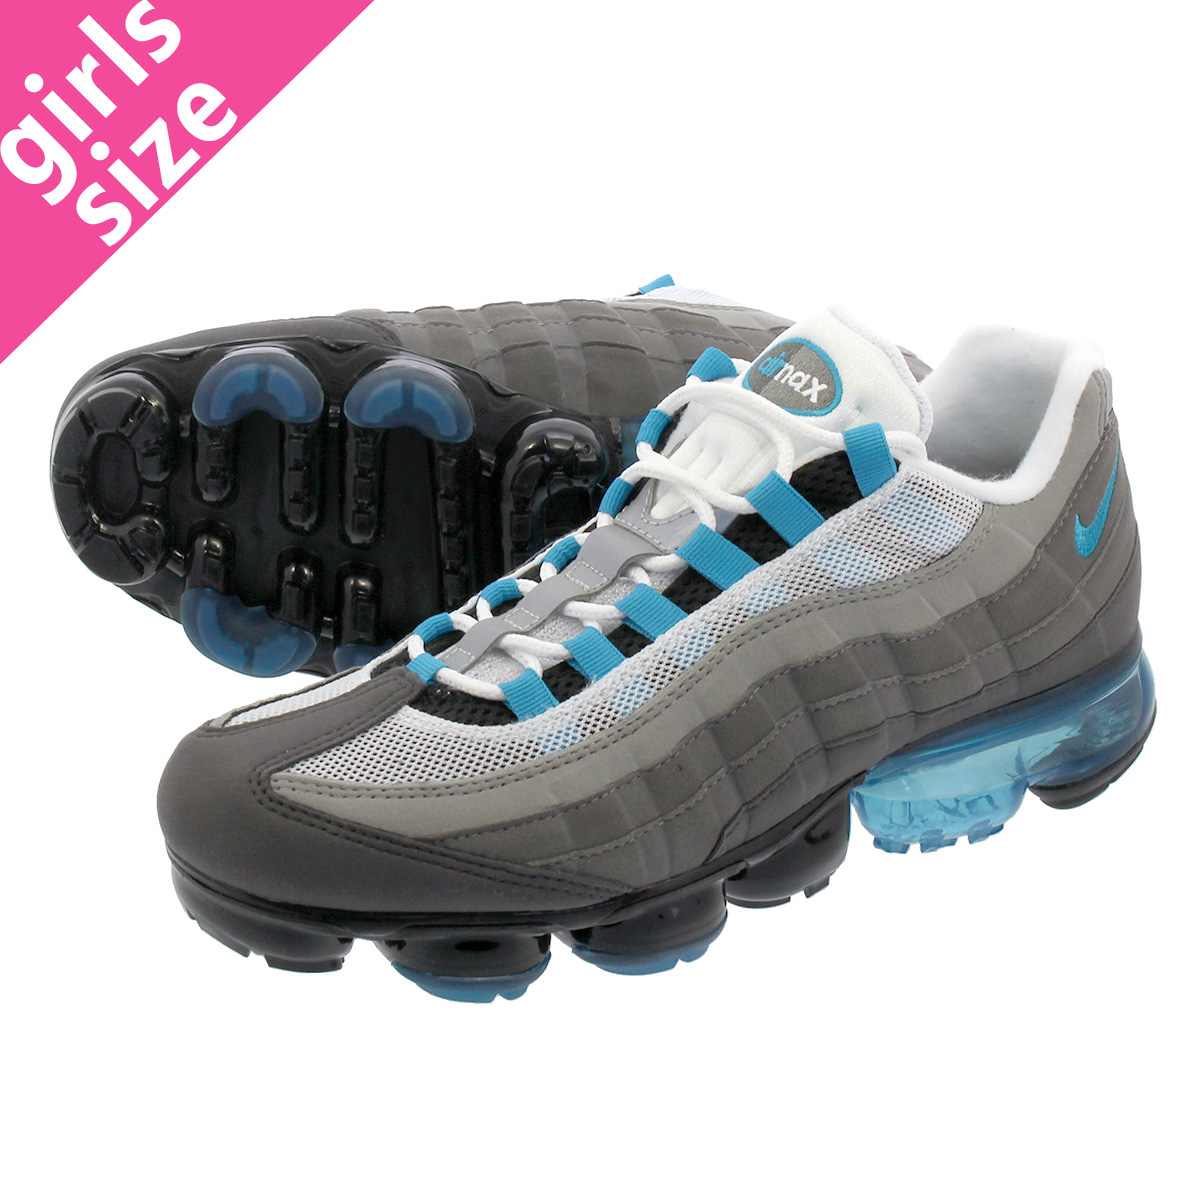 f2014544ff1 NIKE AIR VAPORMAX 95 Nike air vapor max 95 BLACK NEO TURQ MEDIUM ASH DARK  PEWTER aj7292-002